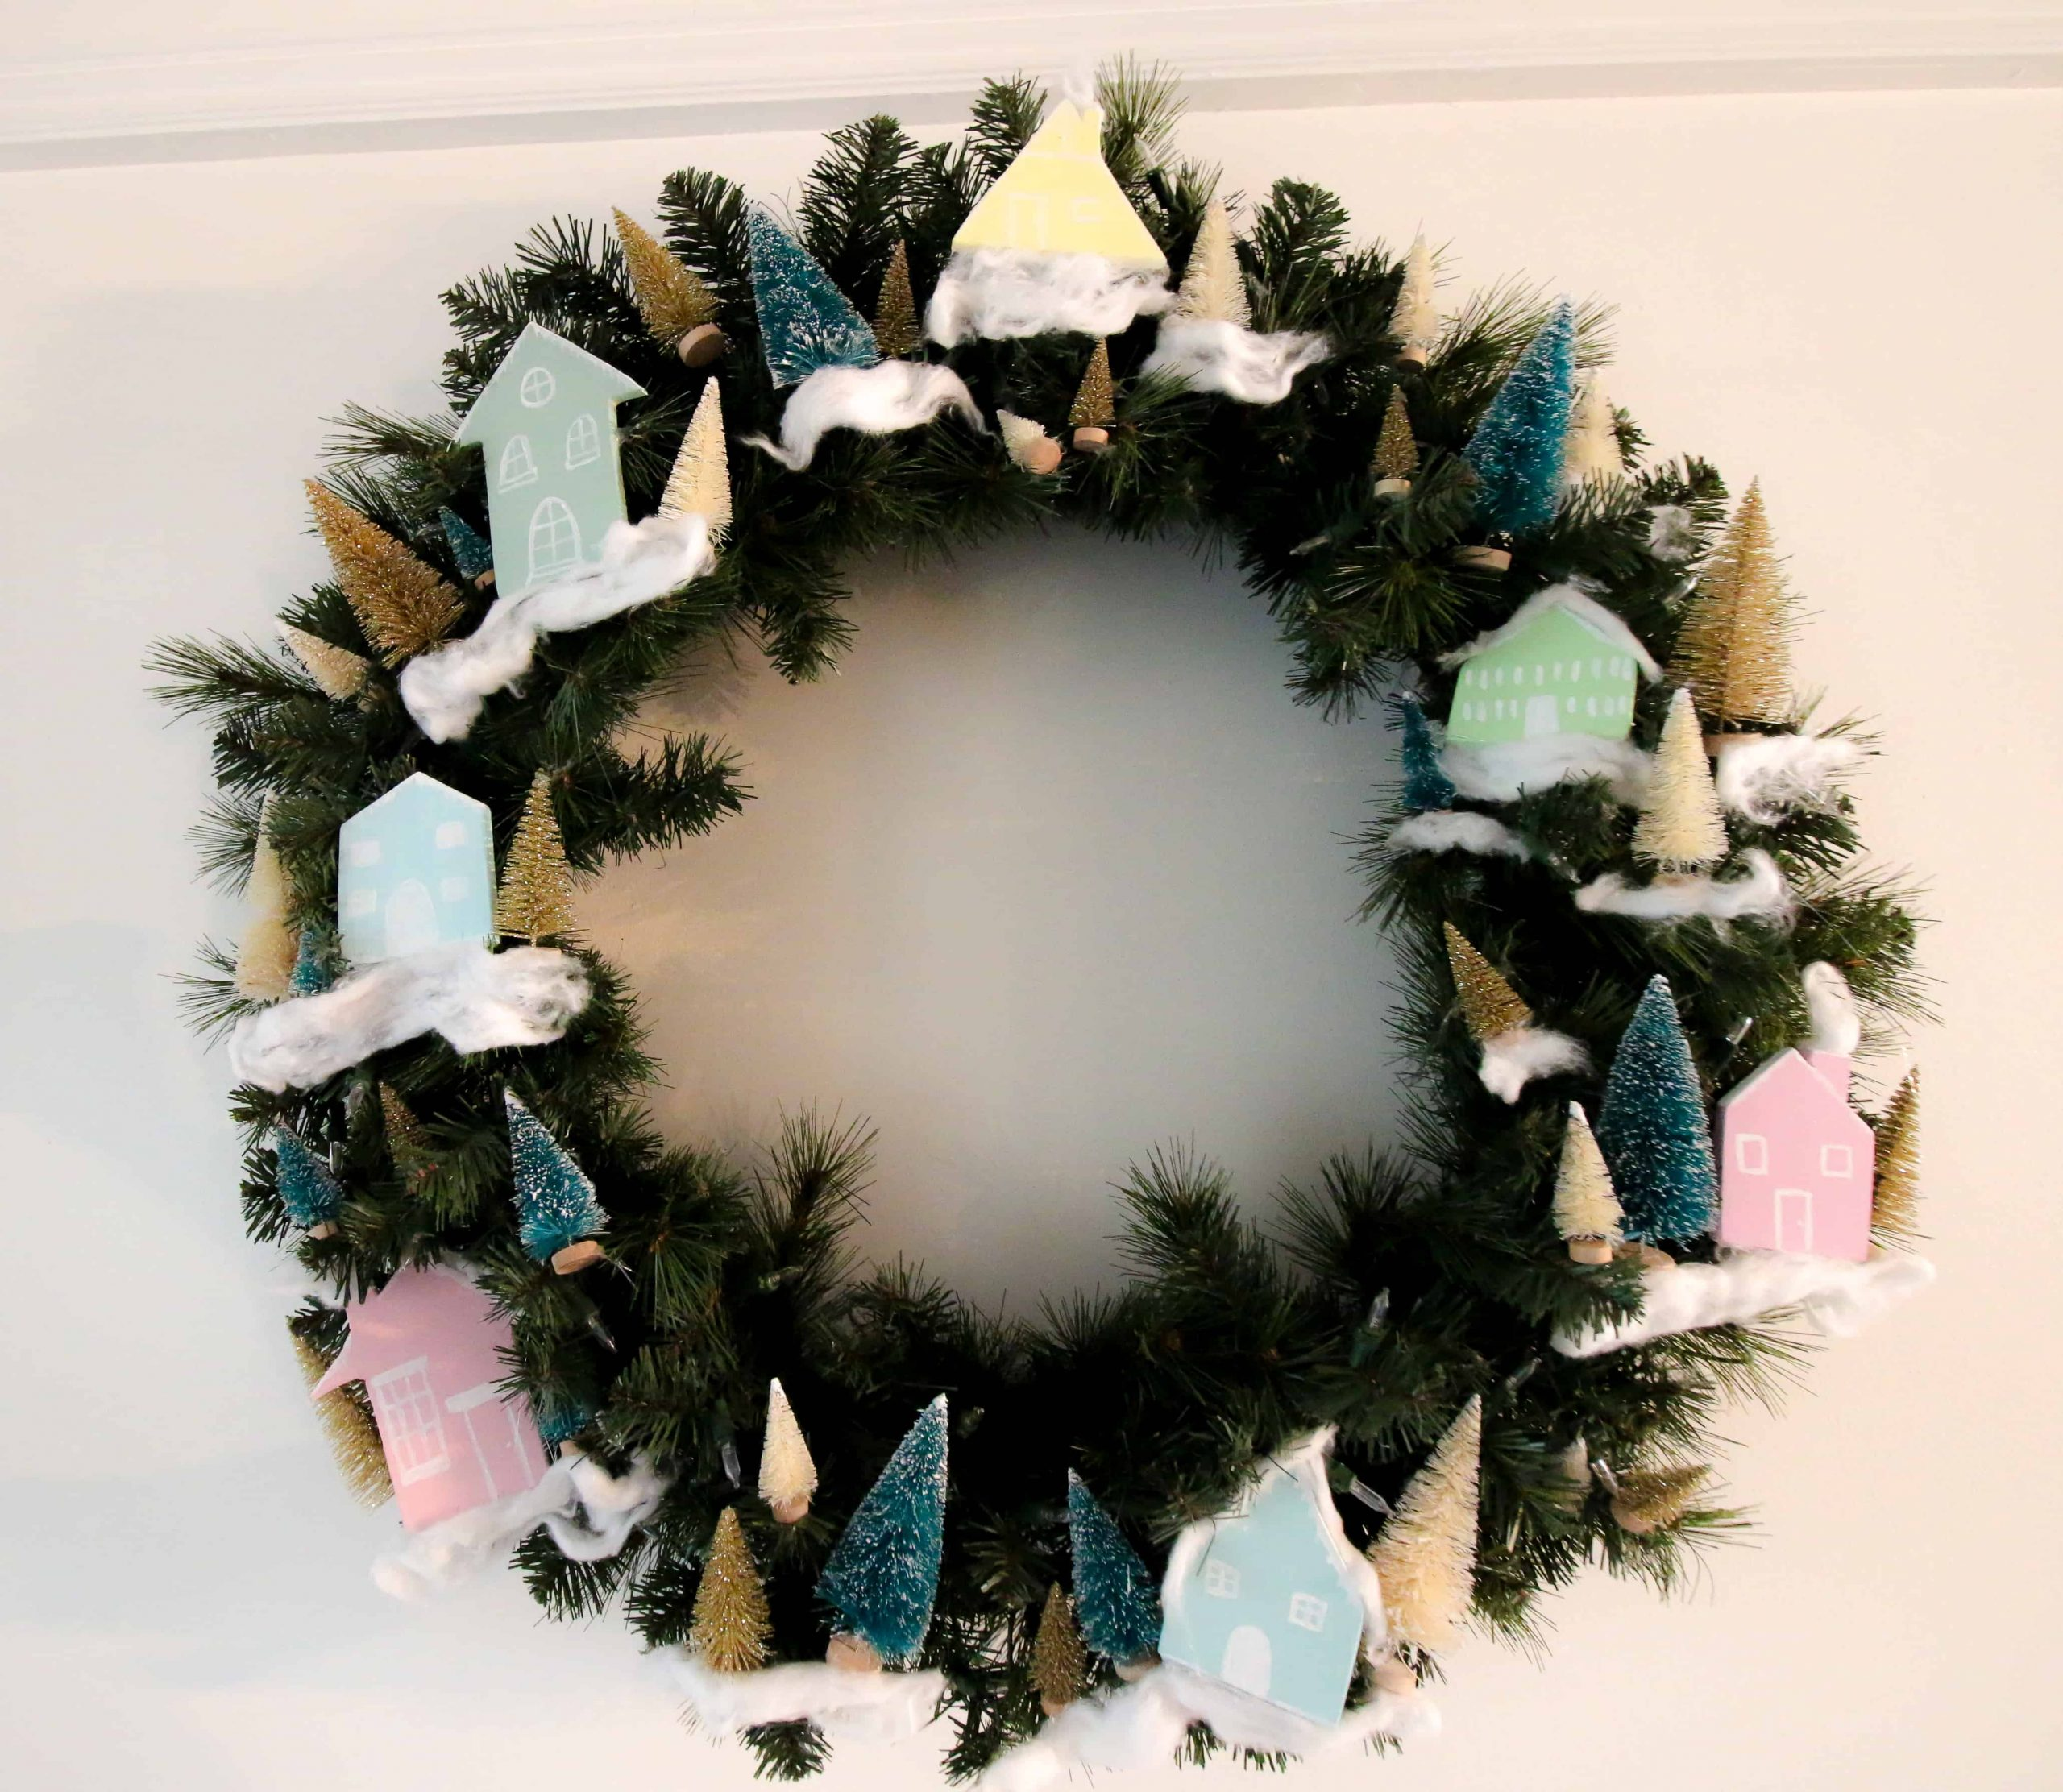 DIY Bottle Brush & Wooden House Christmas Wreath